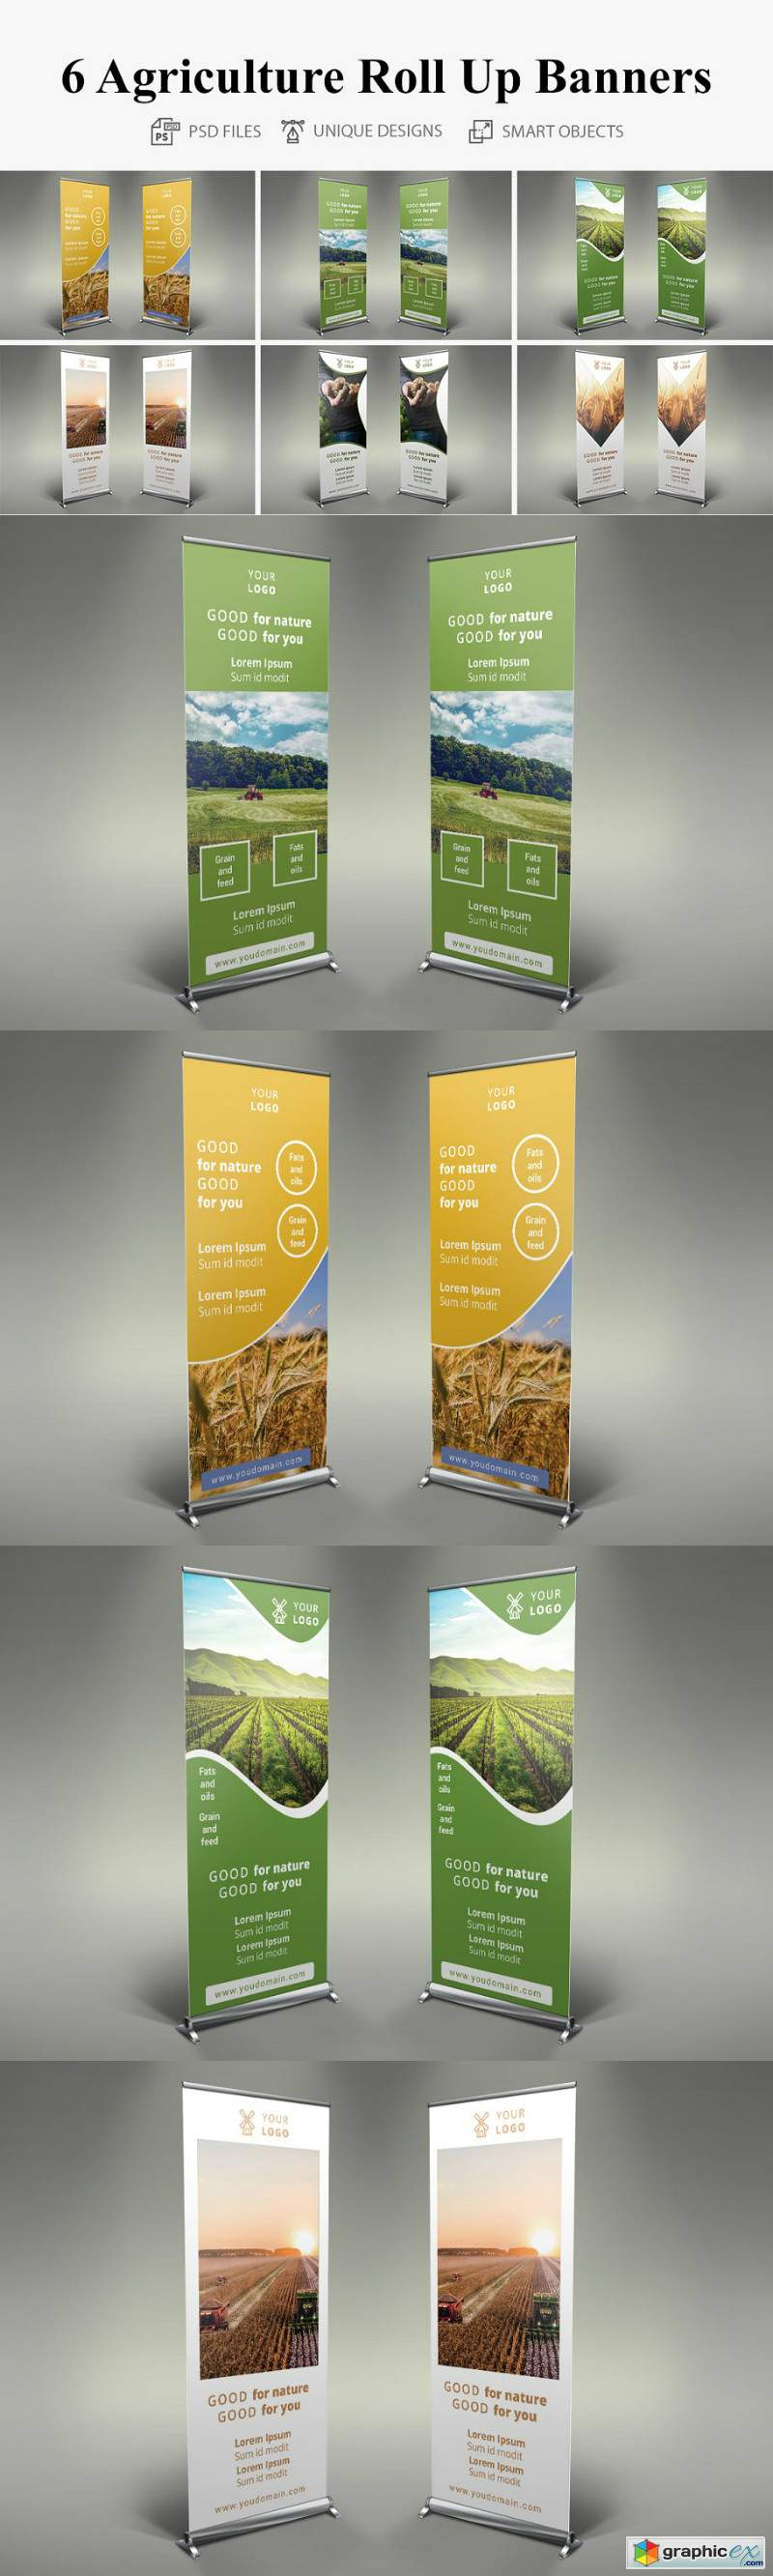 Roll Up Banners - 026